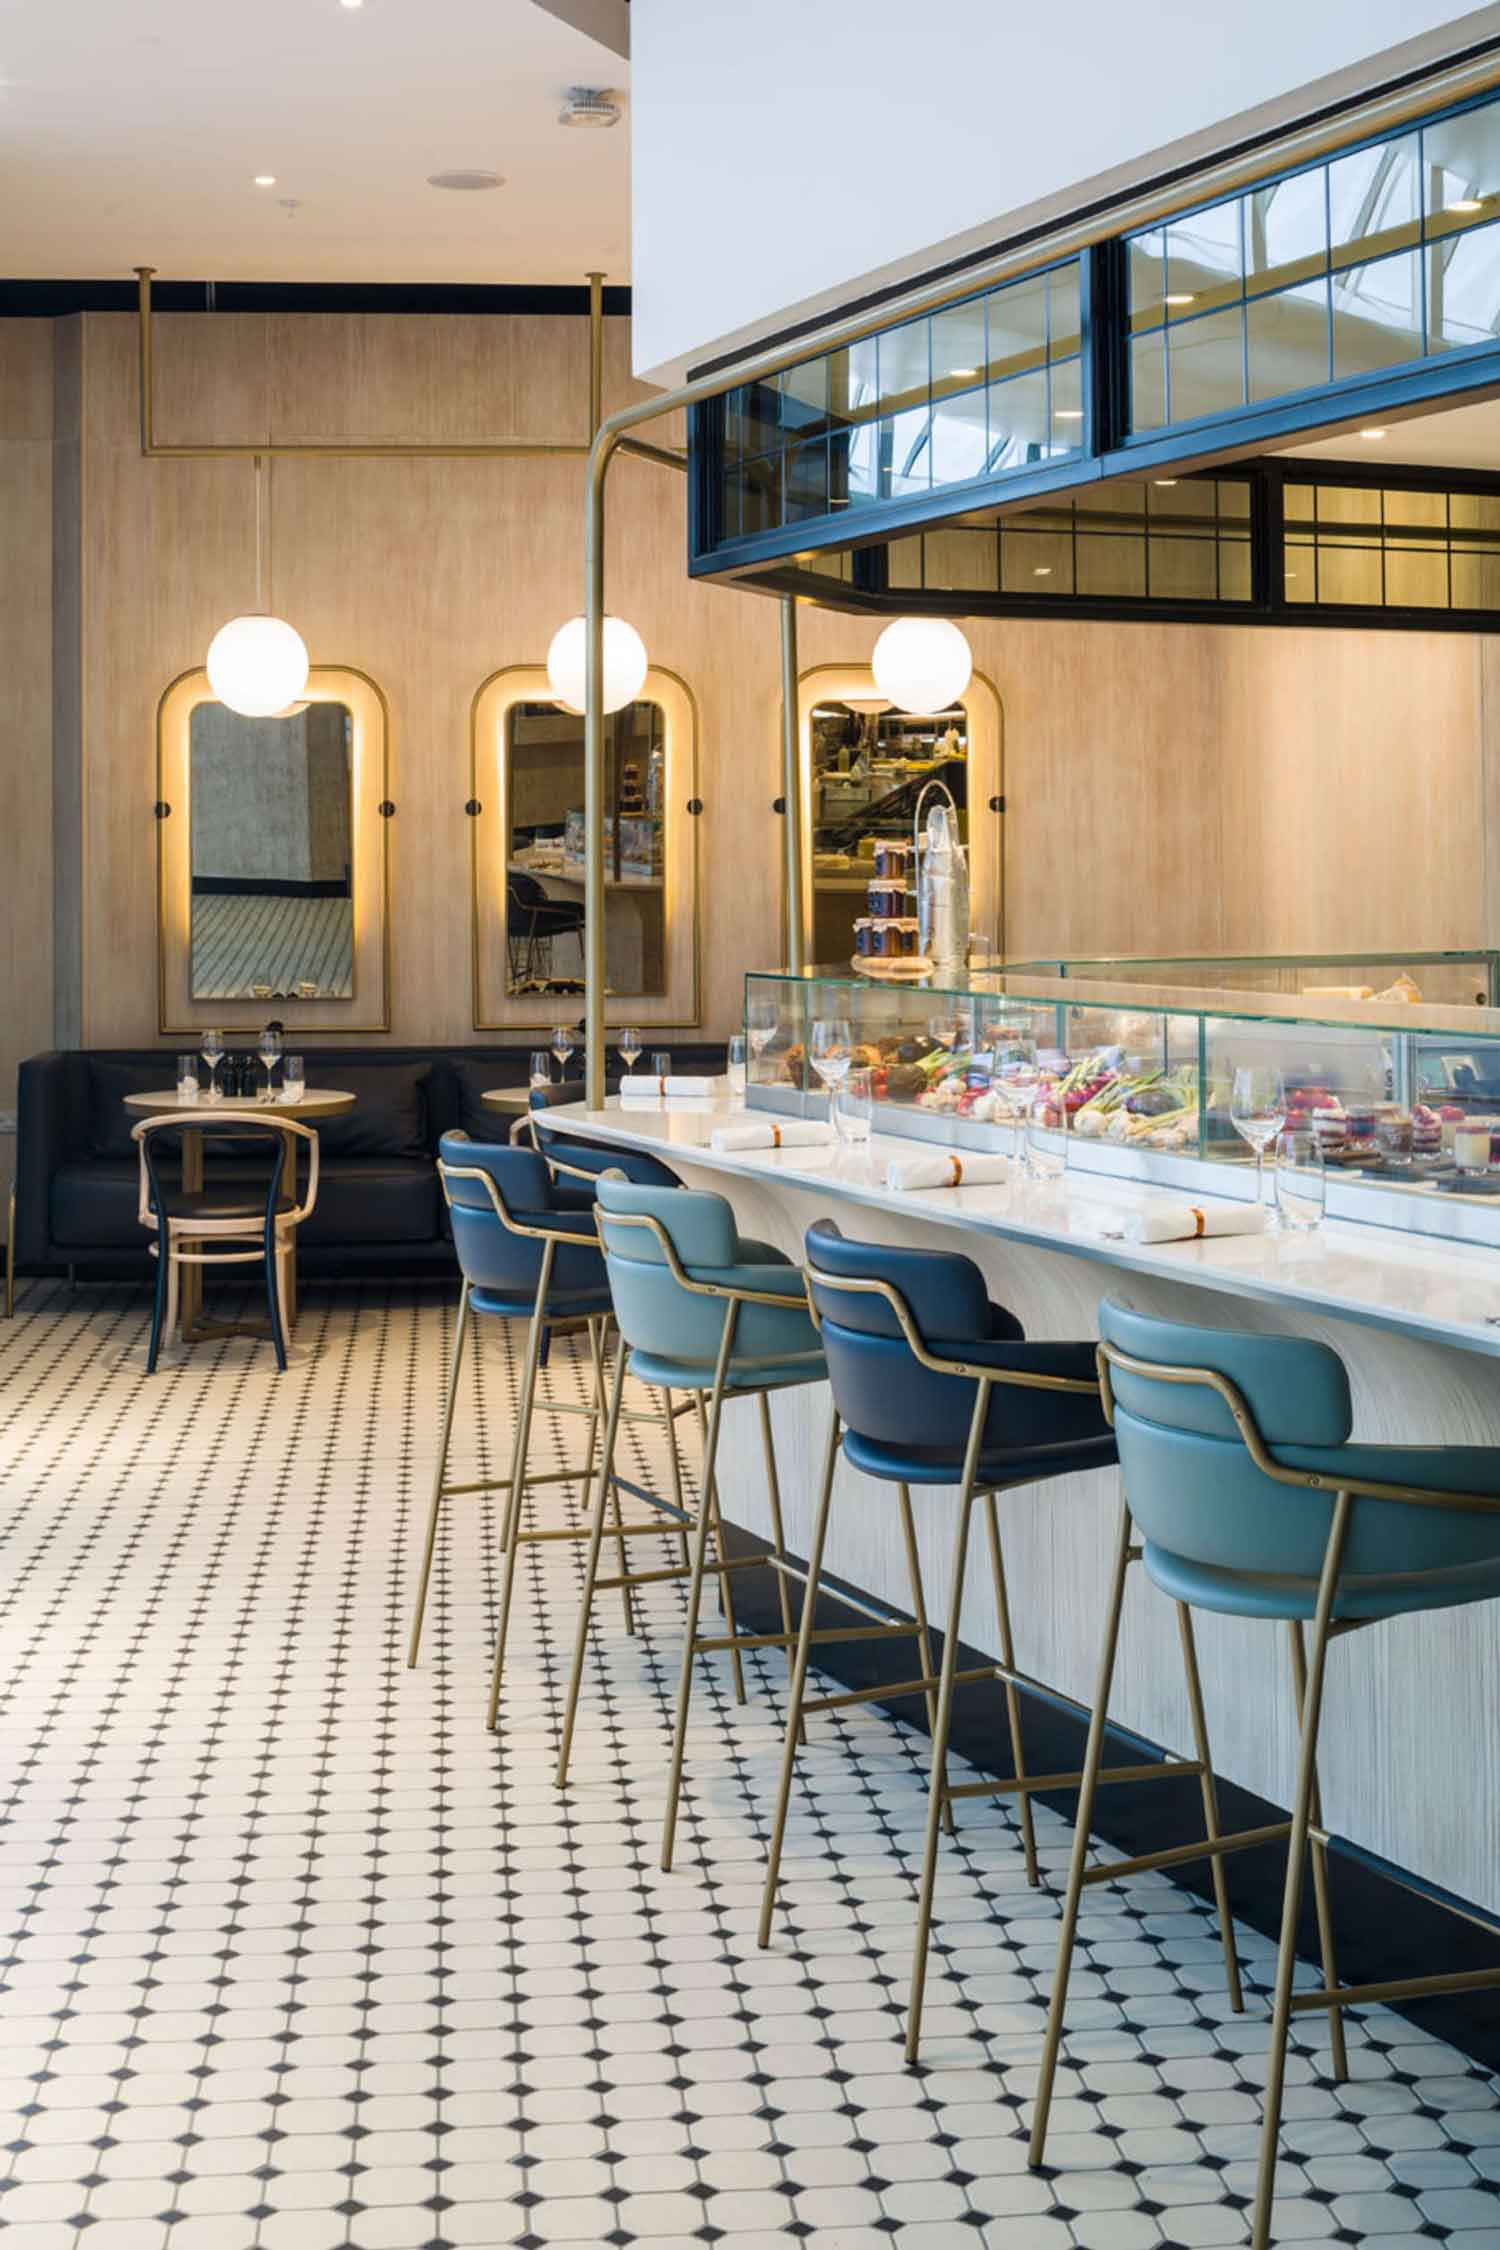 The Gorgeous Kitchen in London by Blacksheep | Yellowtrace